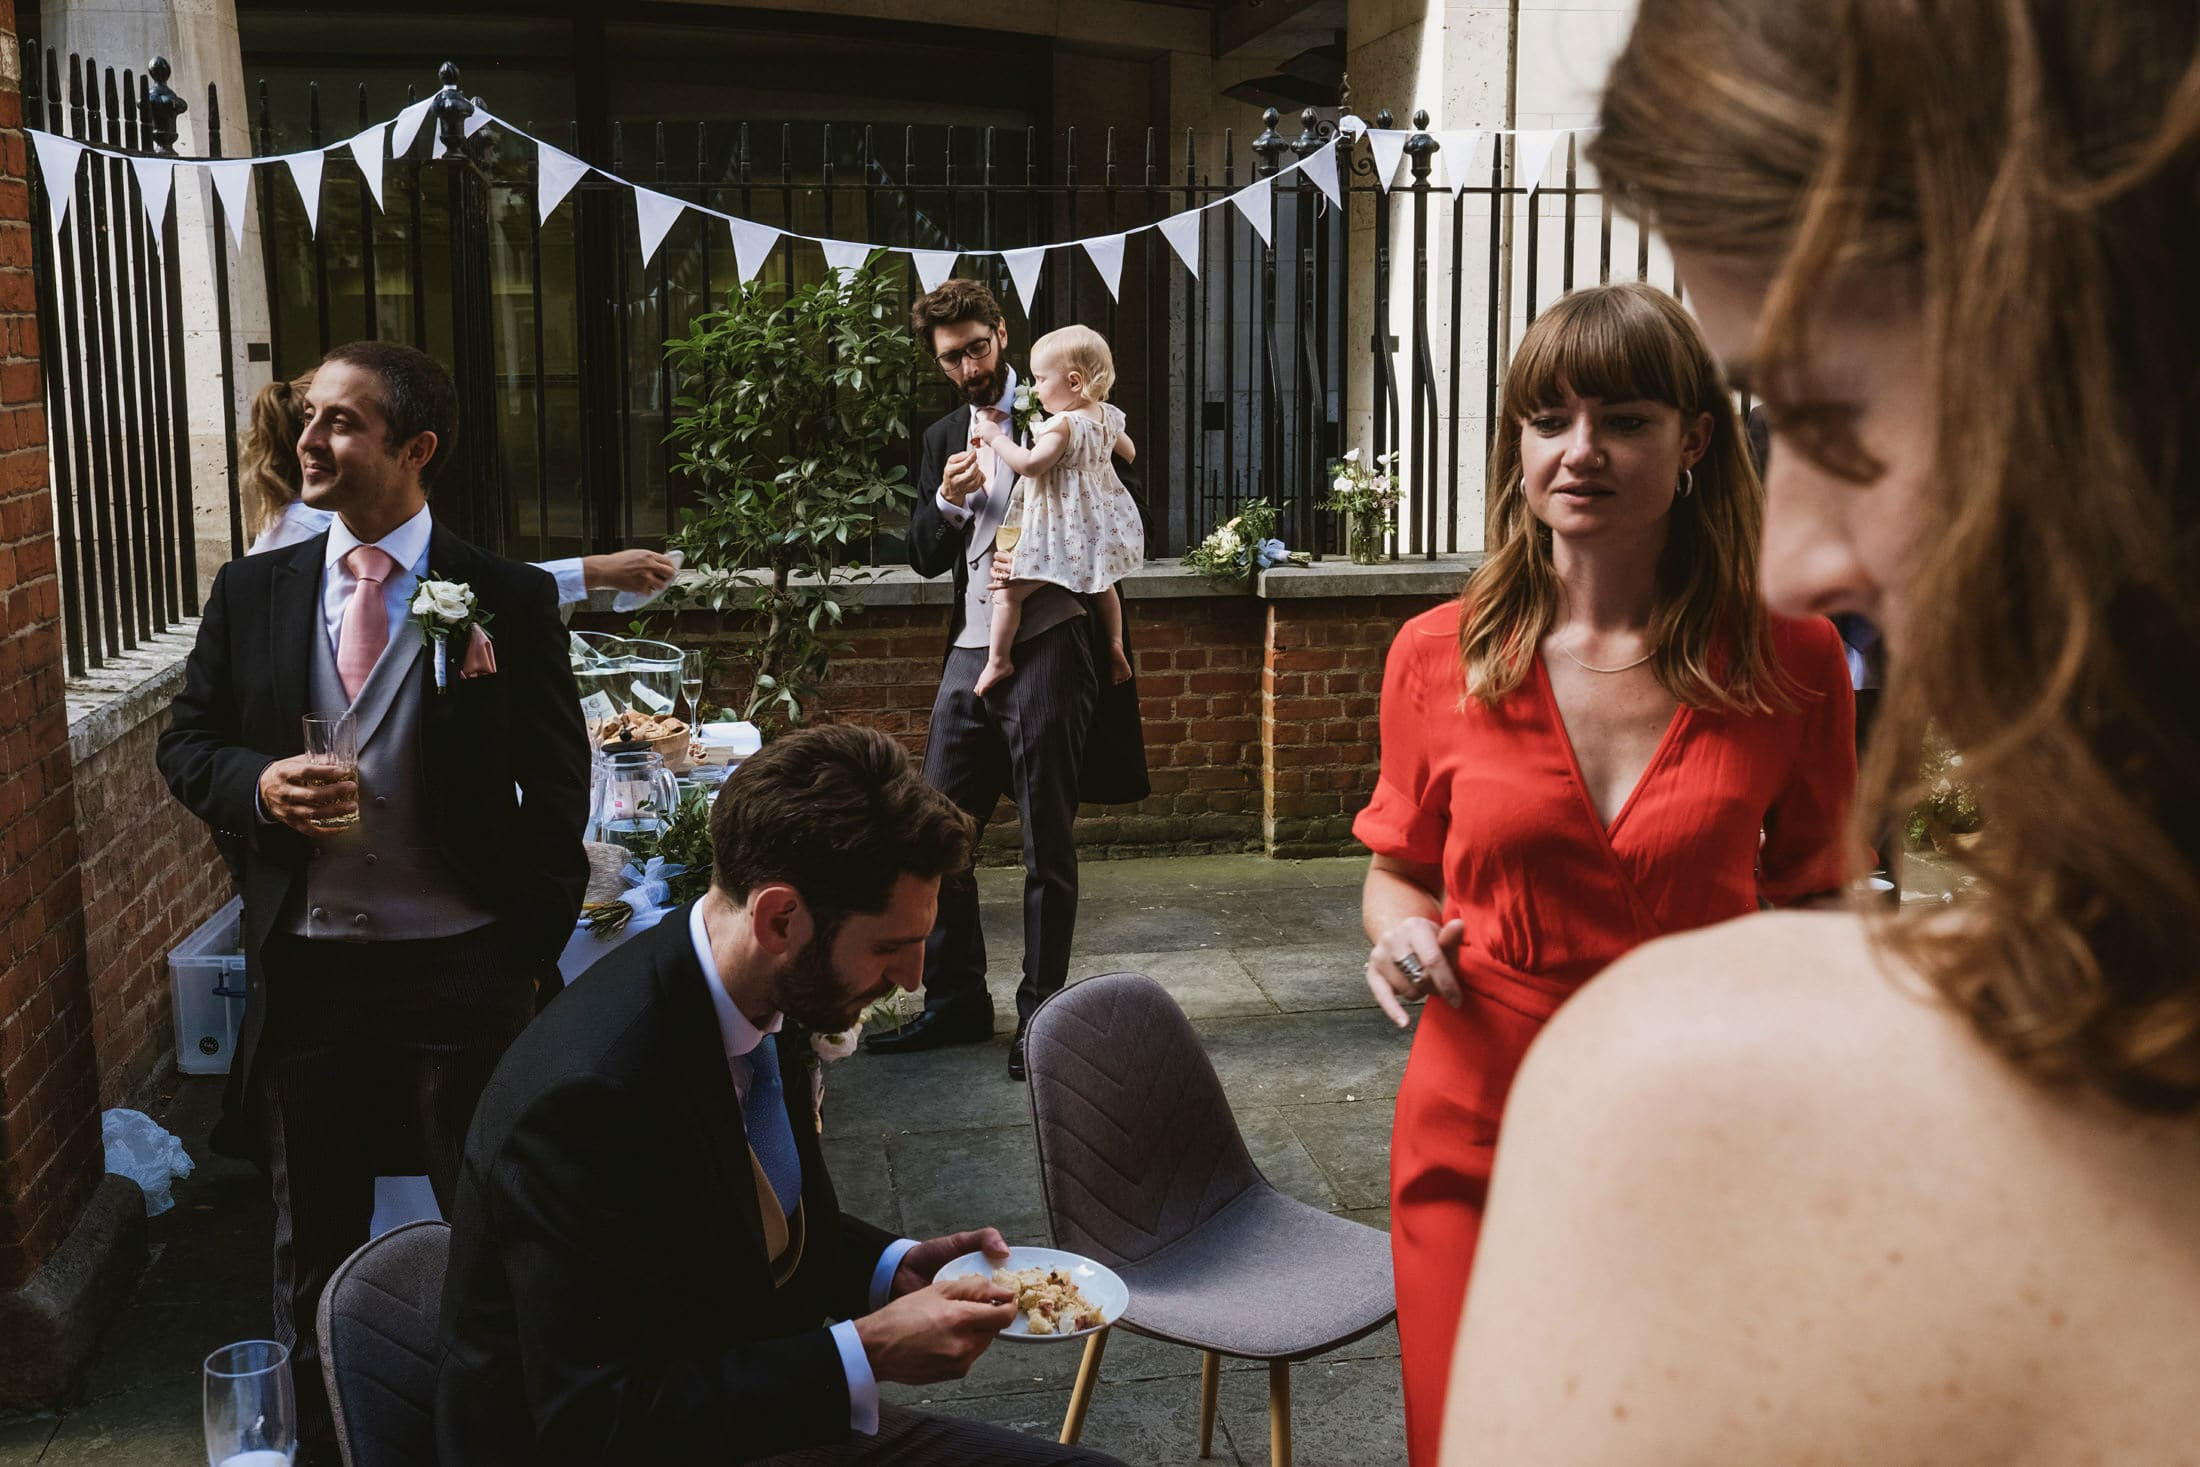 Wedding guests stand together in a London courtyard, all engaged in separate stories in this multi-layered image.